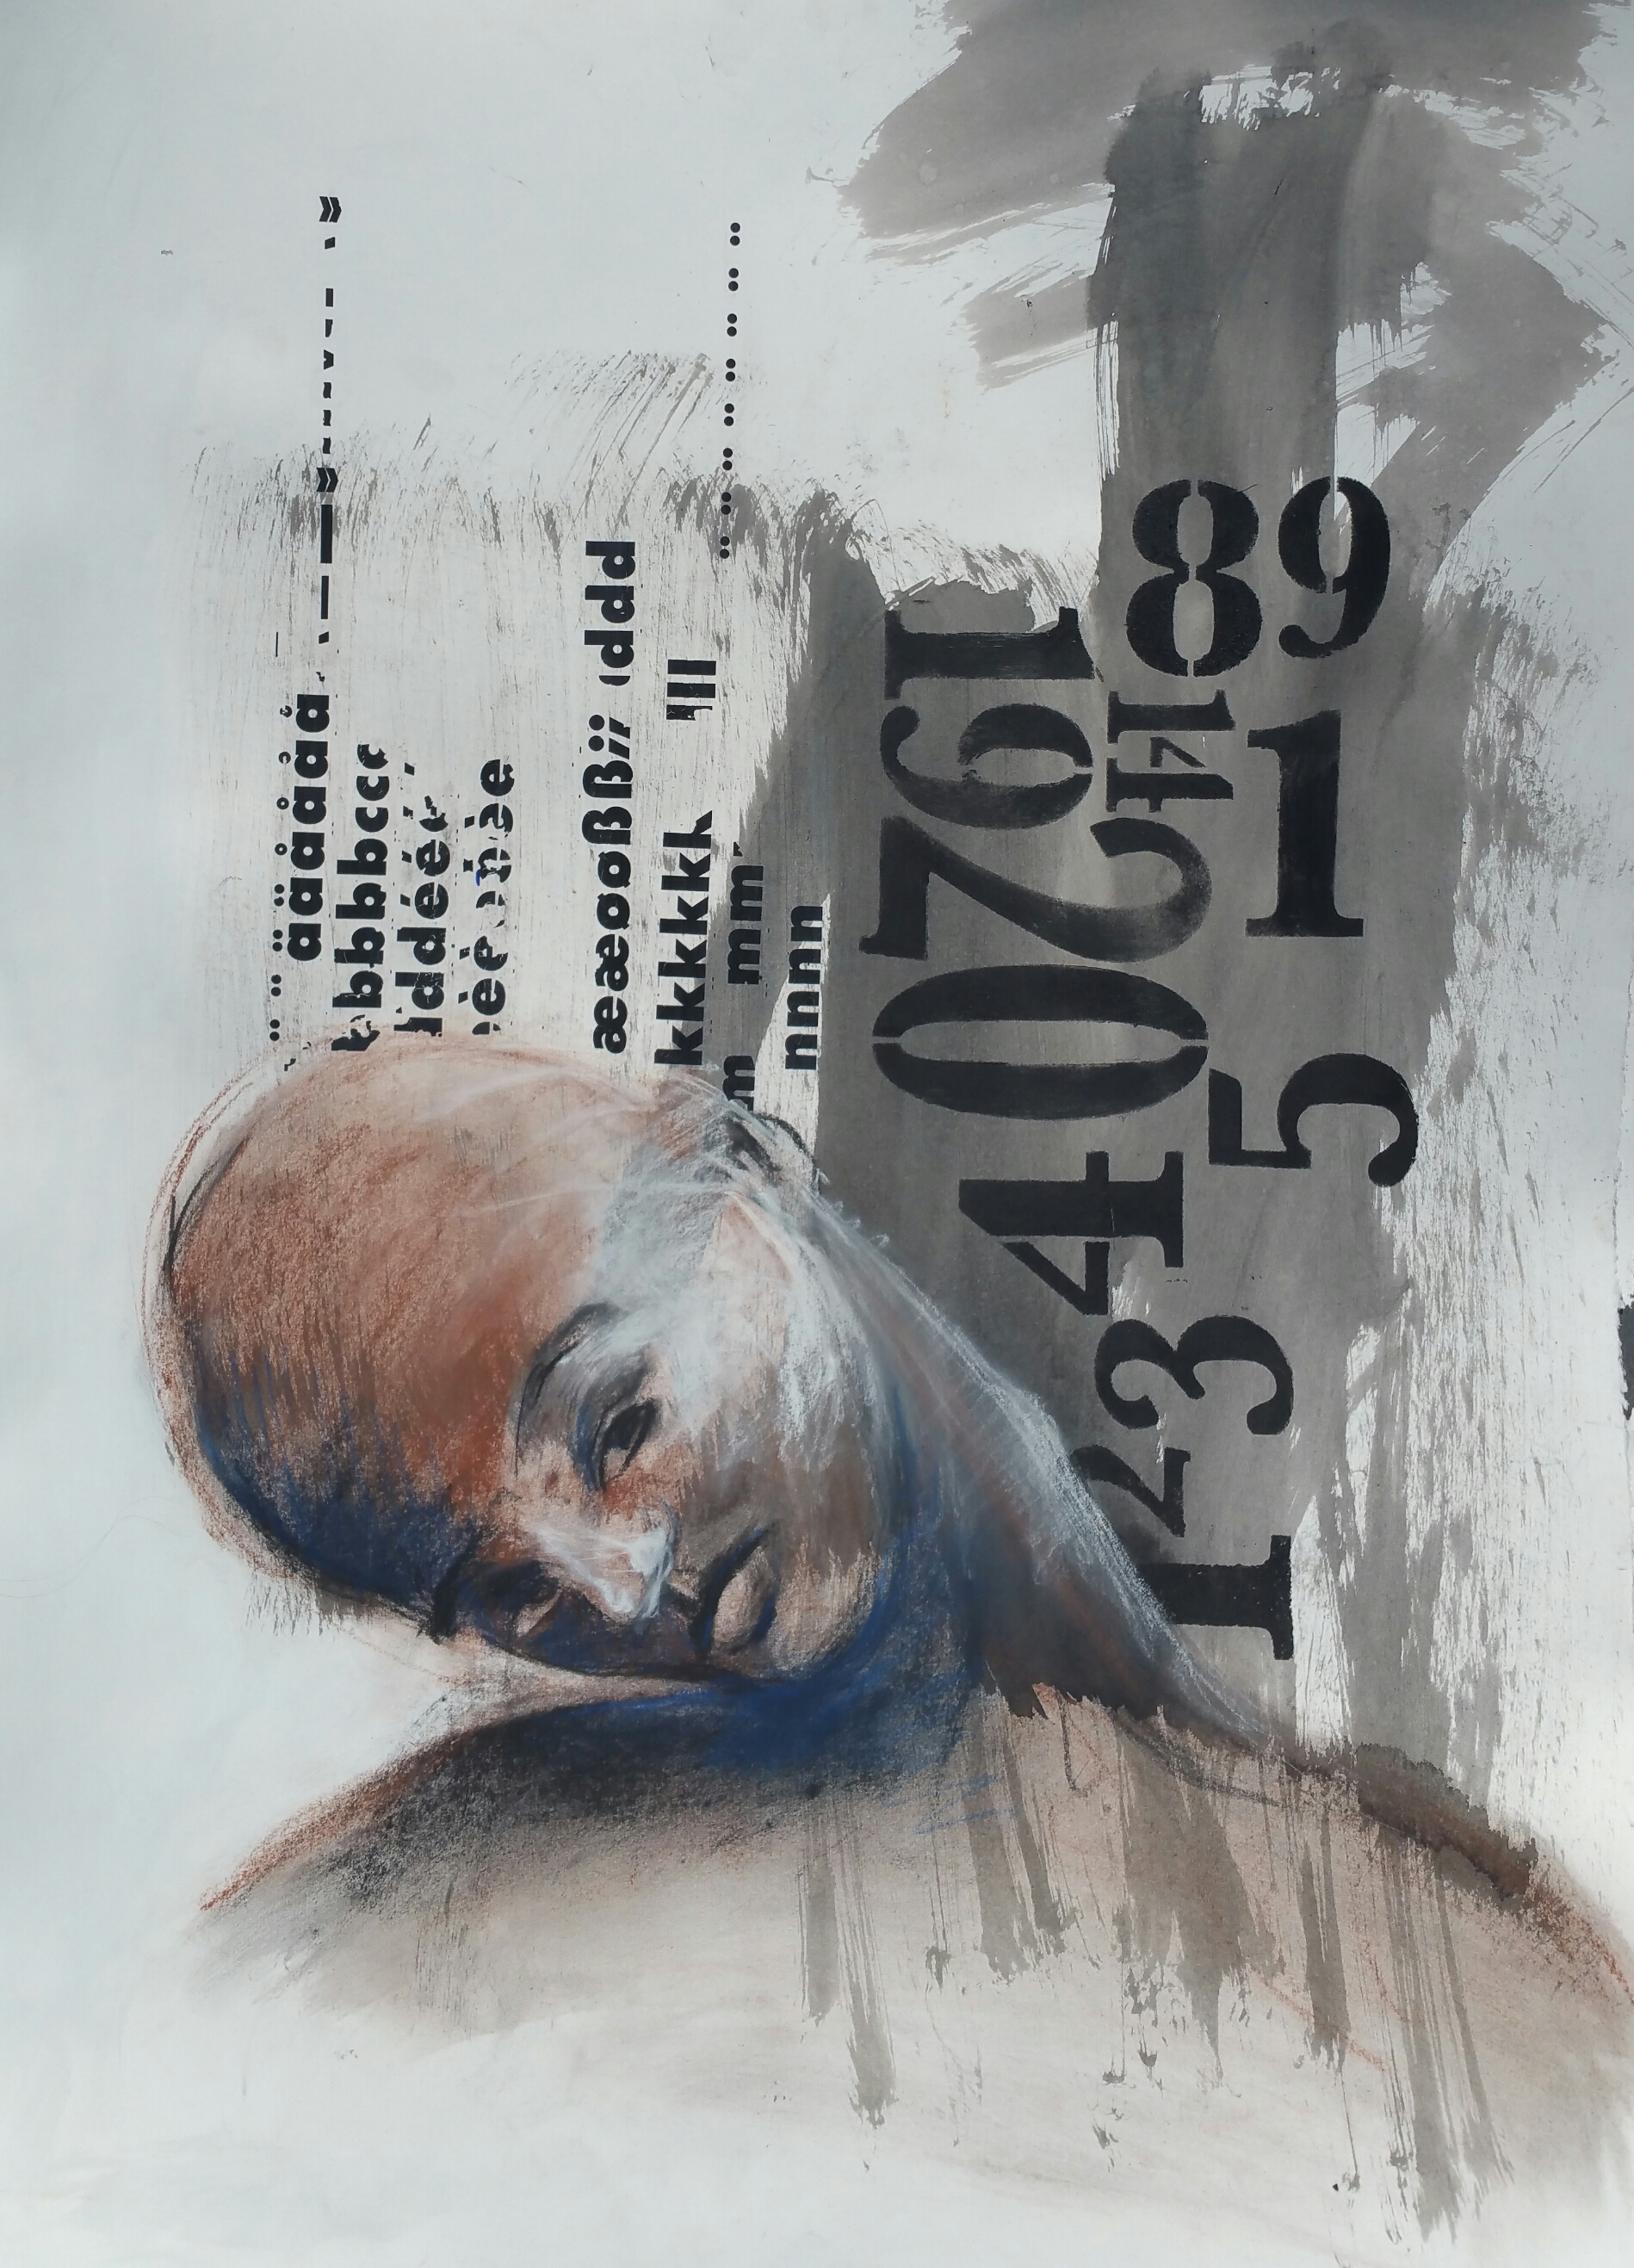 10. Una Kim, December 1979, 30 inches X 22 inches, Ink and charcoal on paper, 2015